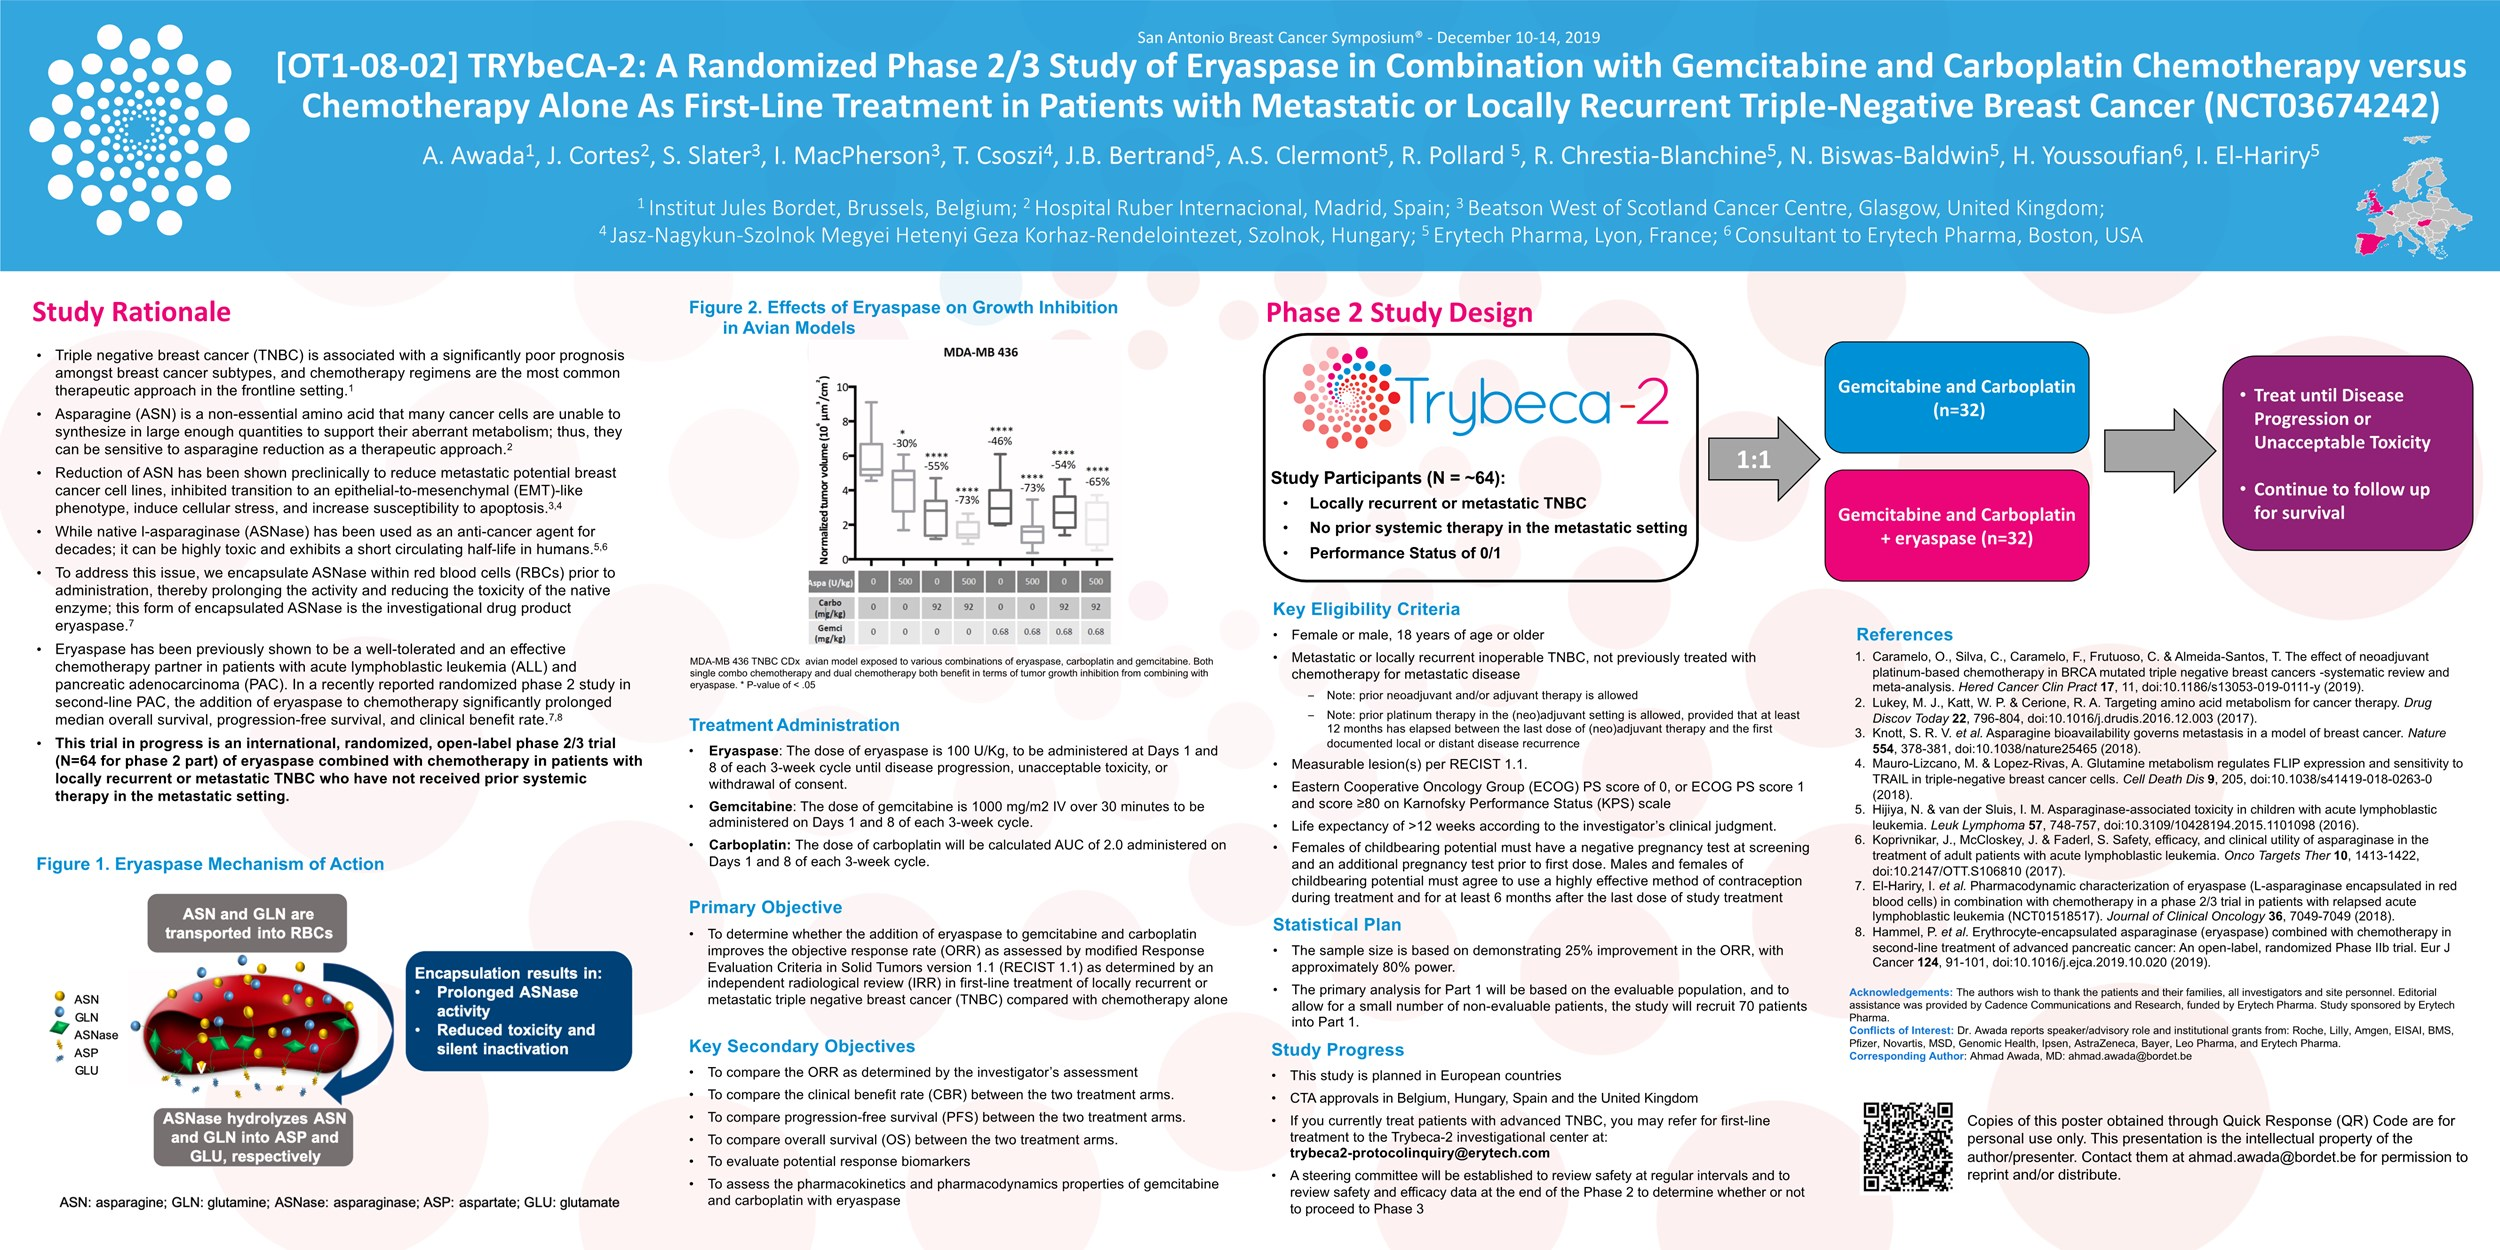 Trybeca-2: a randomized phase 2/3 study of eryaspase in combination with gemcitabine and carboplatin chemotherapy versus chemotherapy alone as first-line treatment in patients with metastatic or locally recurrent triple-negative breast cancer (nct03674242)